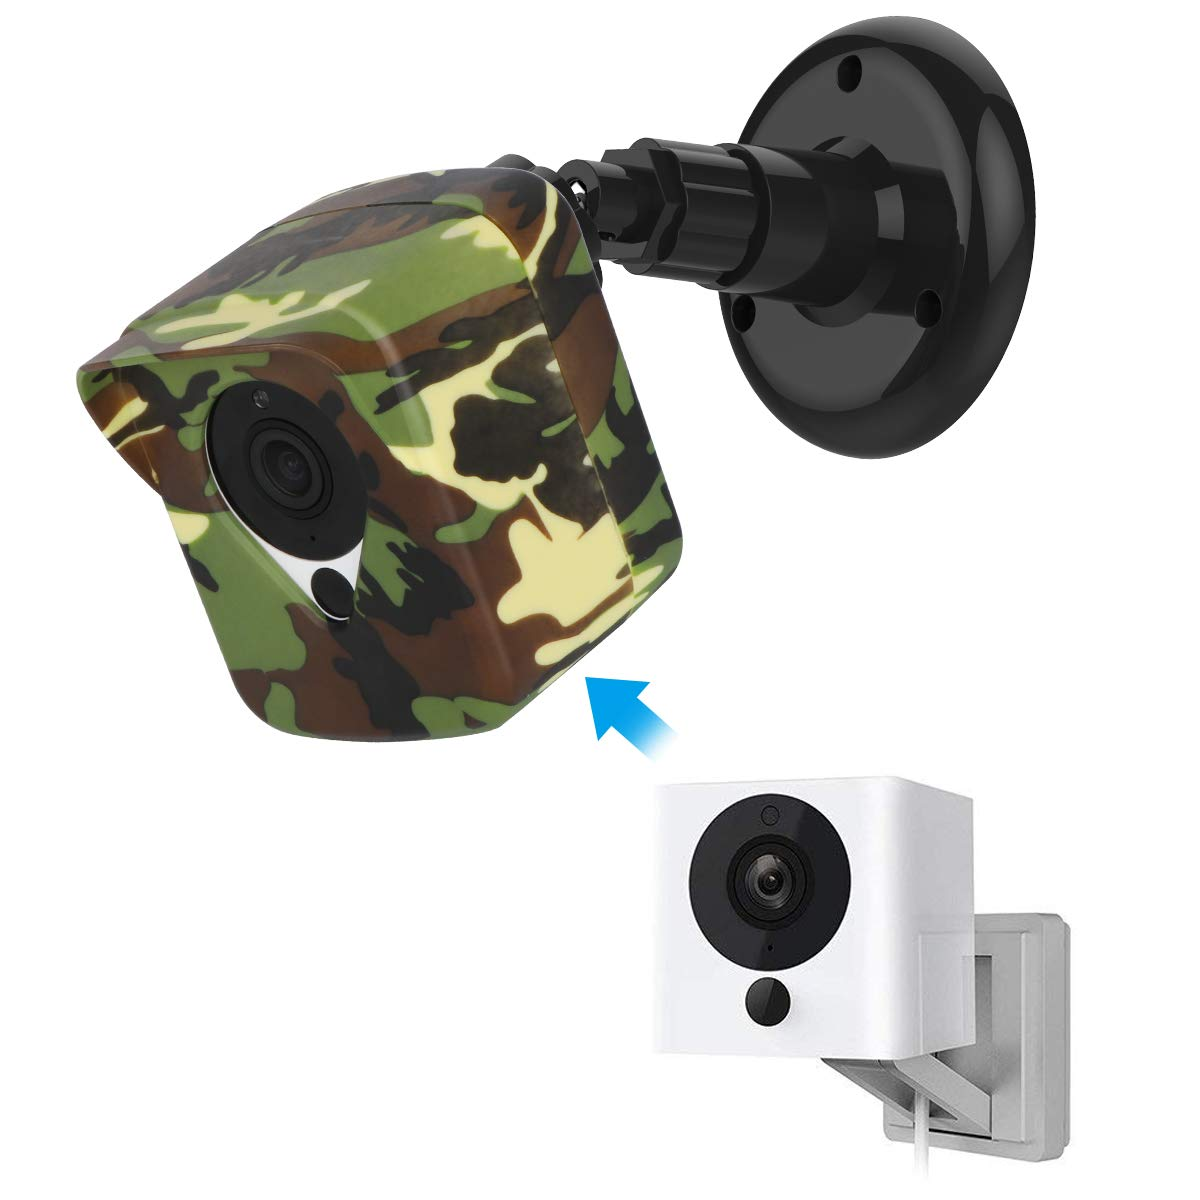 Wyze Cam Camera Wall Mount Bracket, COOWUFAN Weather Proof 360 Degree Protective Adjustable Housing Mount and Cover for Wyze Cam V2 V1 and Ismart Spot Camera Indoor Outdoor (Camo(1 Pack))